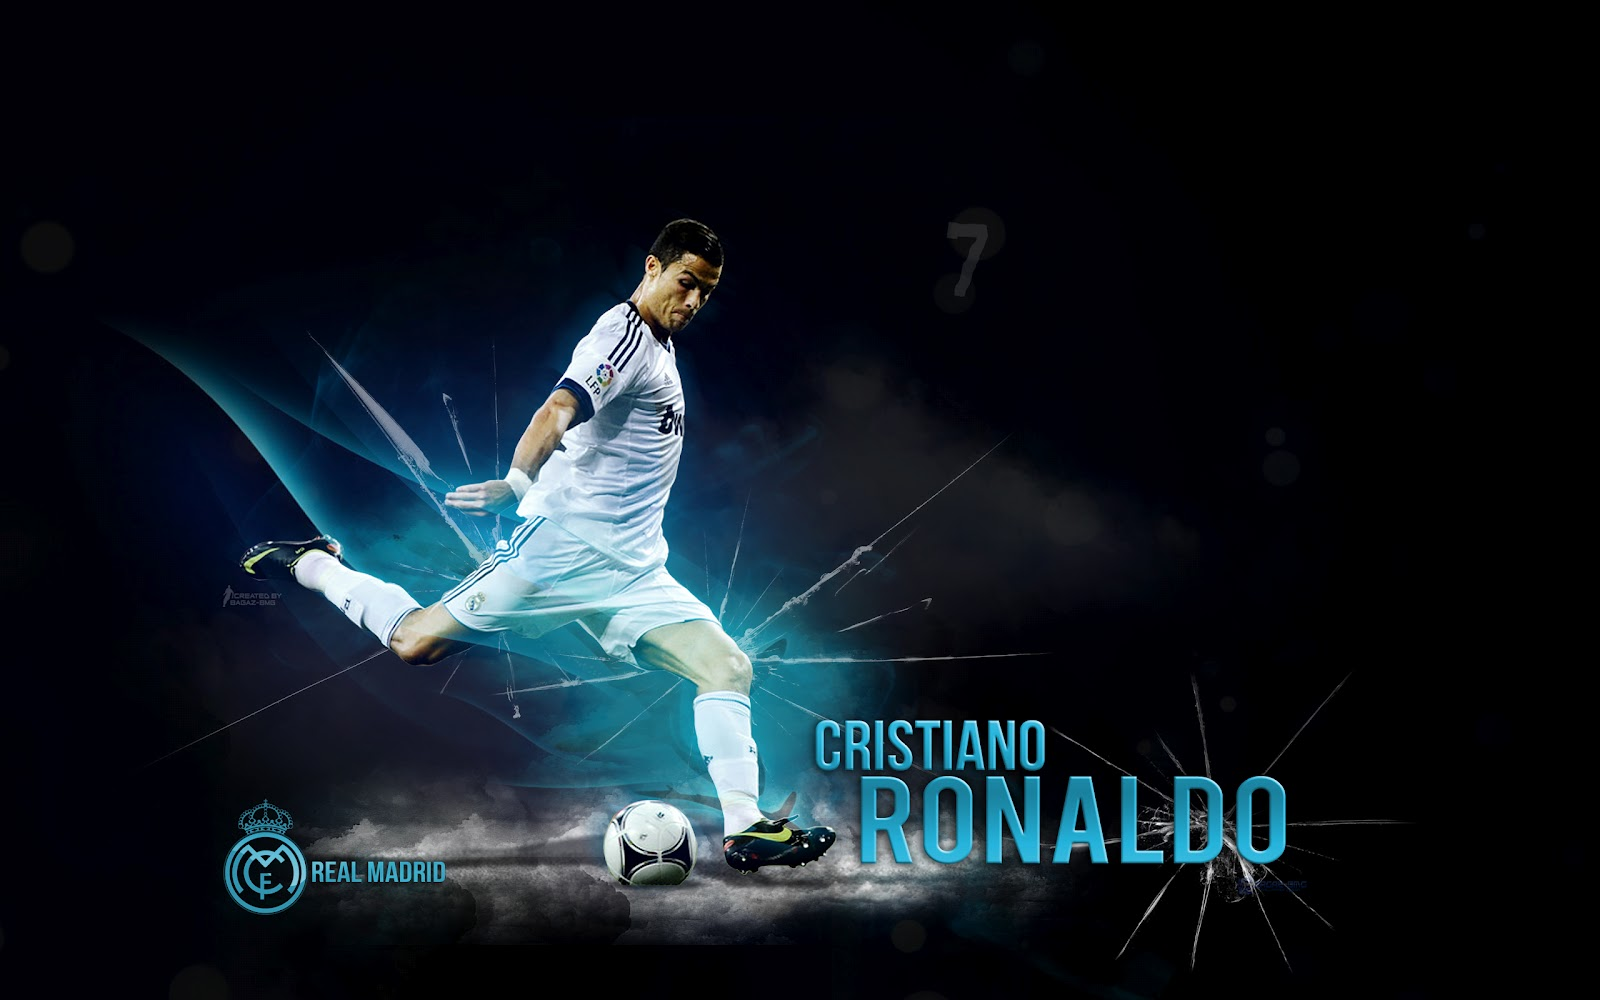 Cristiano ronaldo football wallpaper voltagebd Images